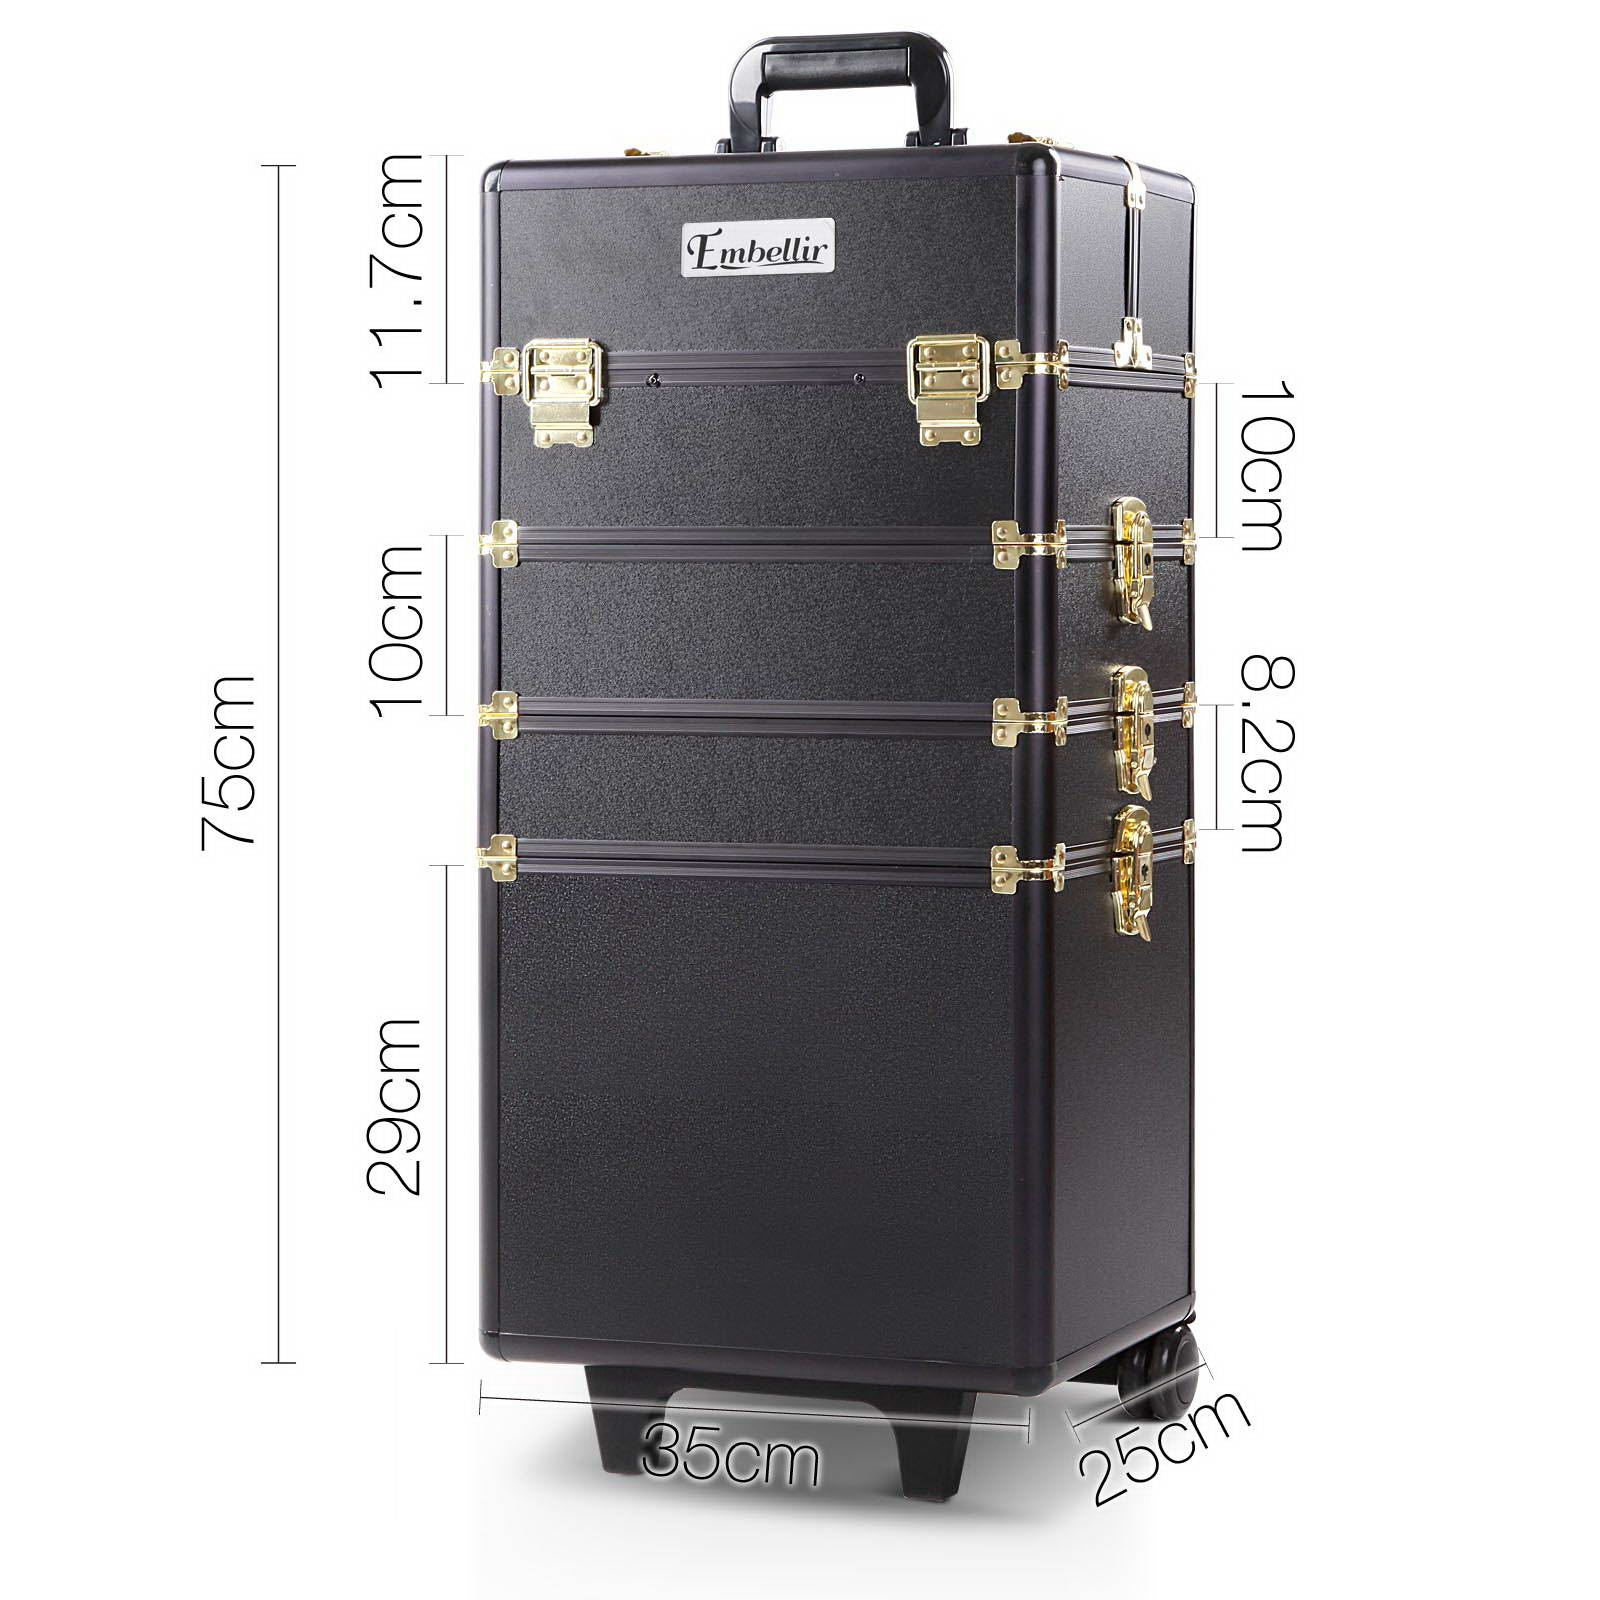 Brand New Embellir 7 in 1 Portable Cosmetic Beauty Makeup Trolley – Black & Gold Fast Free Shipping